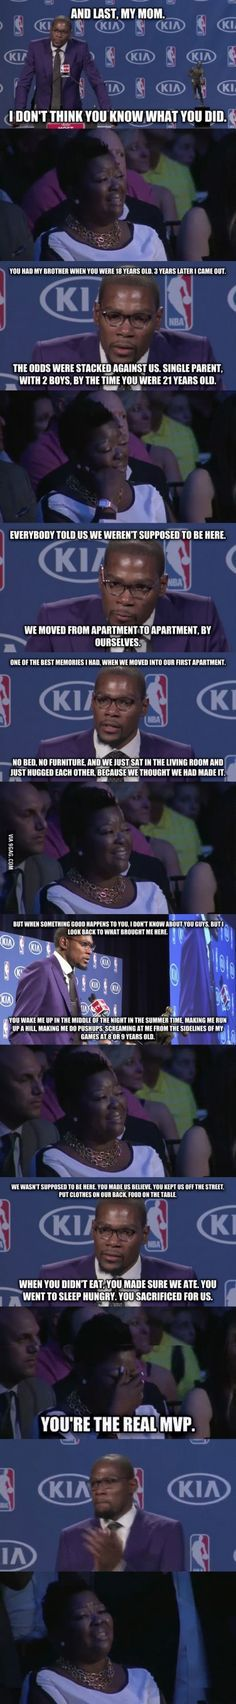 Kevin Durant talks about his mom during MVP speech...makes me tear up every time